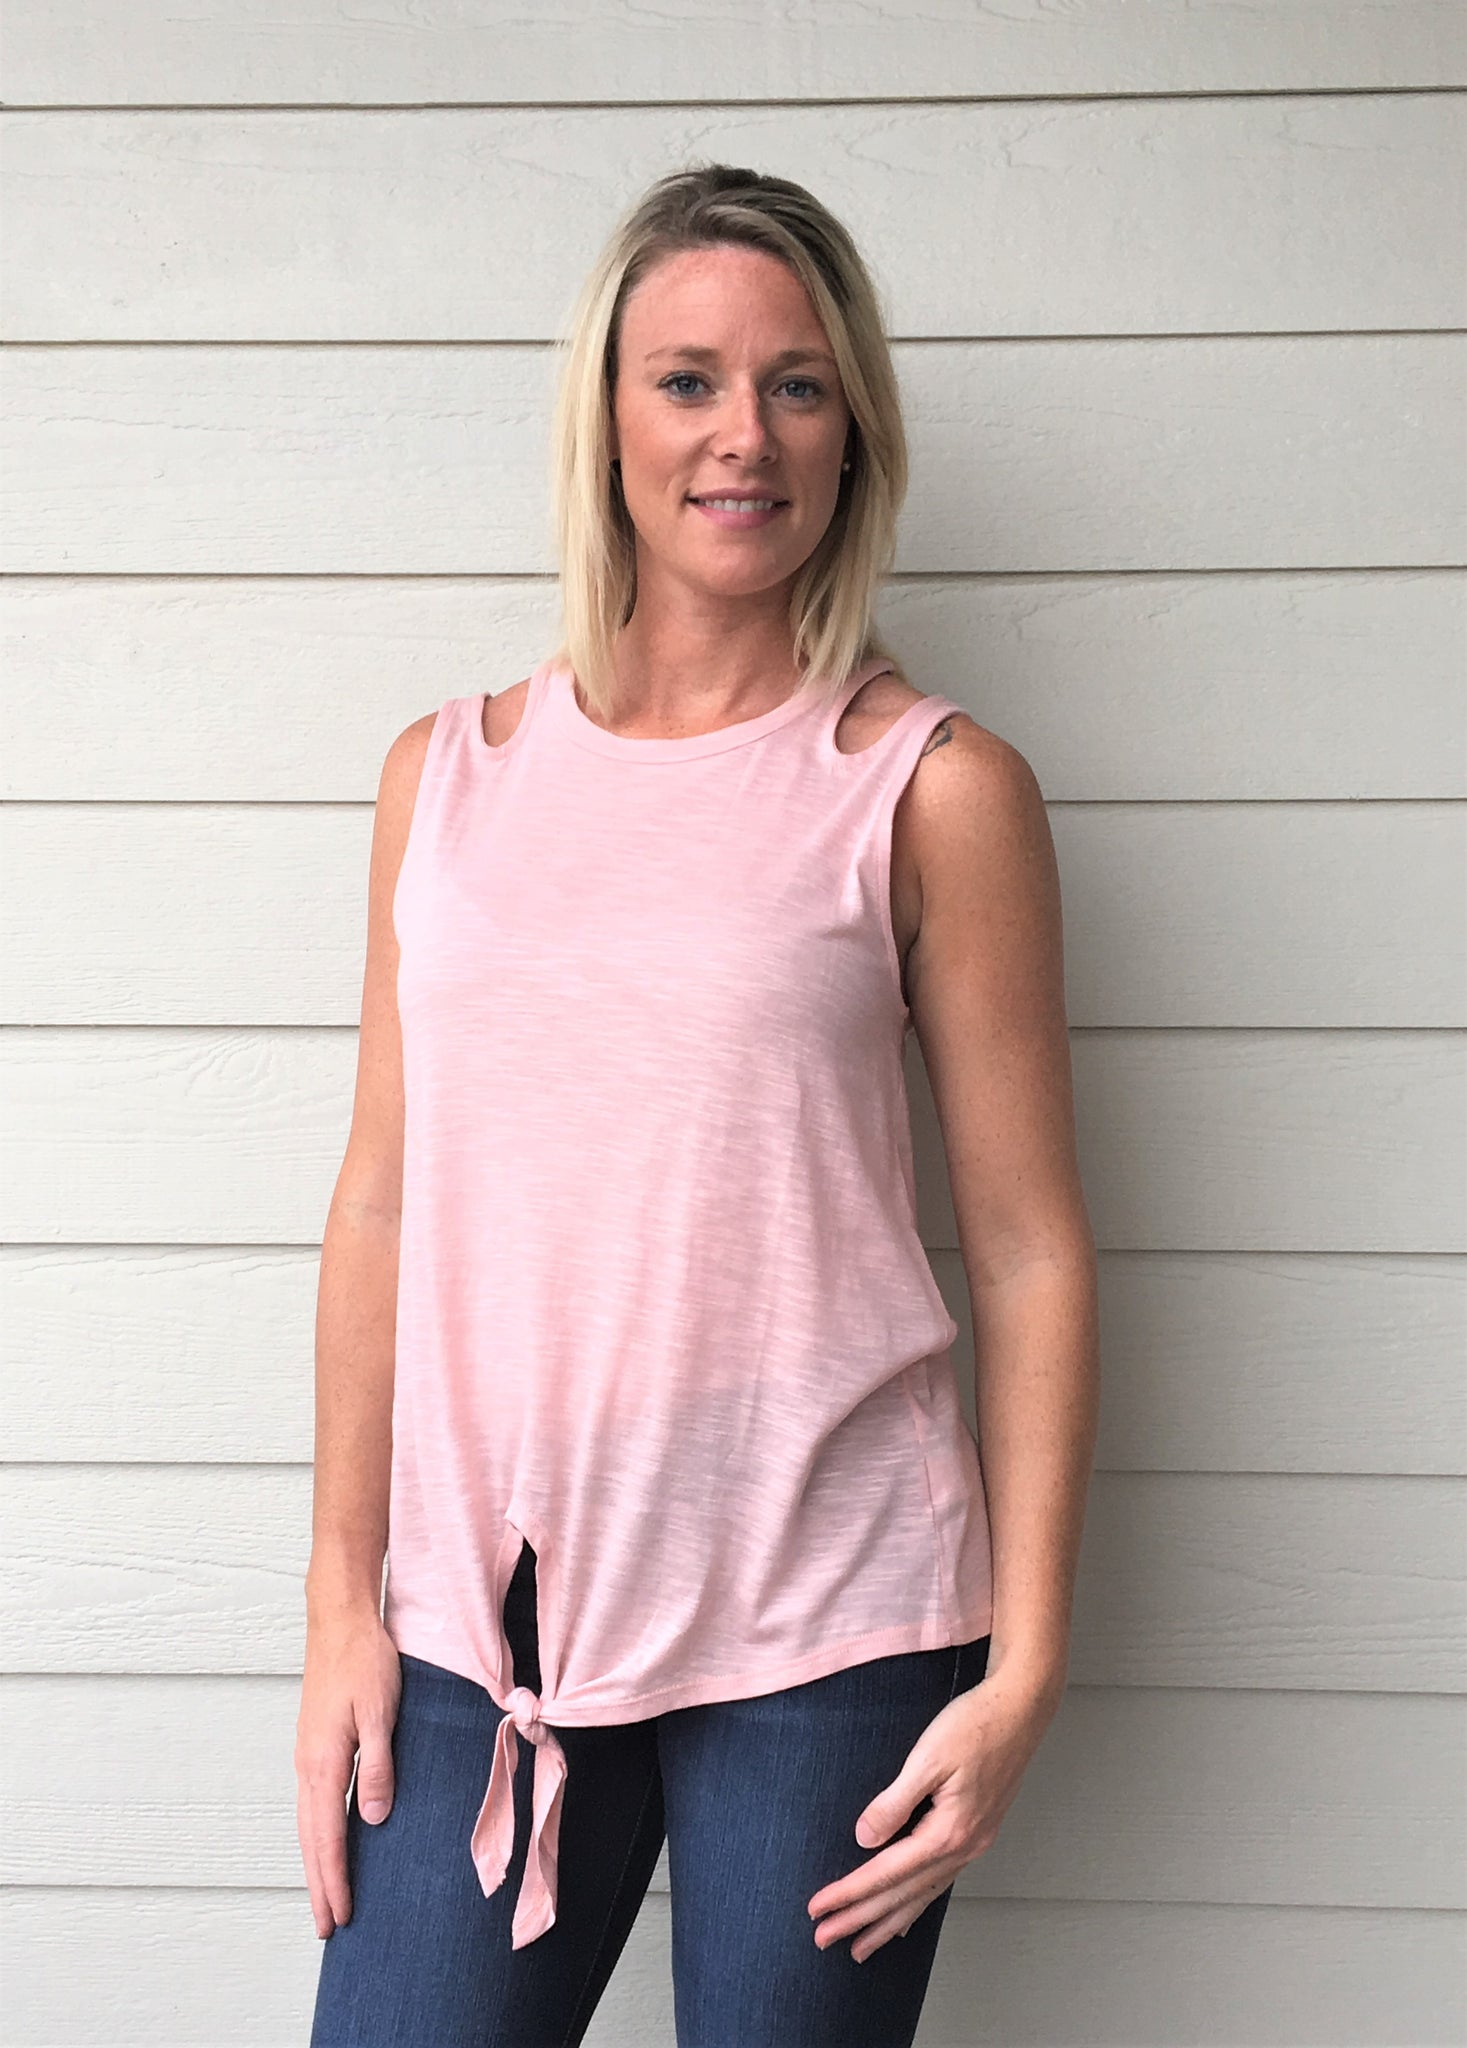 Sleeveless, Slub Knit Fabric Top with Shoulder Cutouts featuring a Front Self-Tie Knot